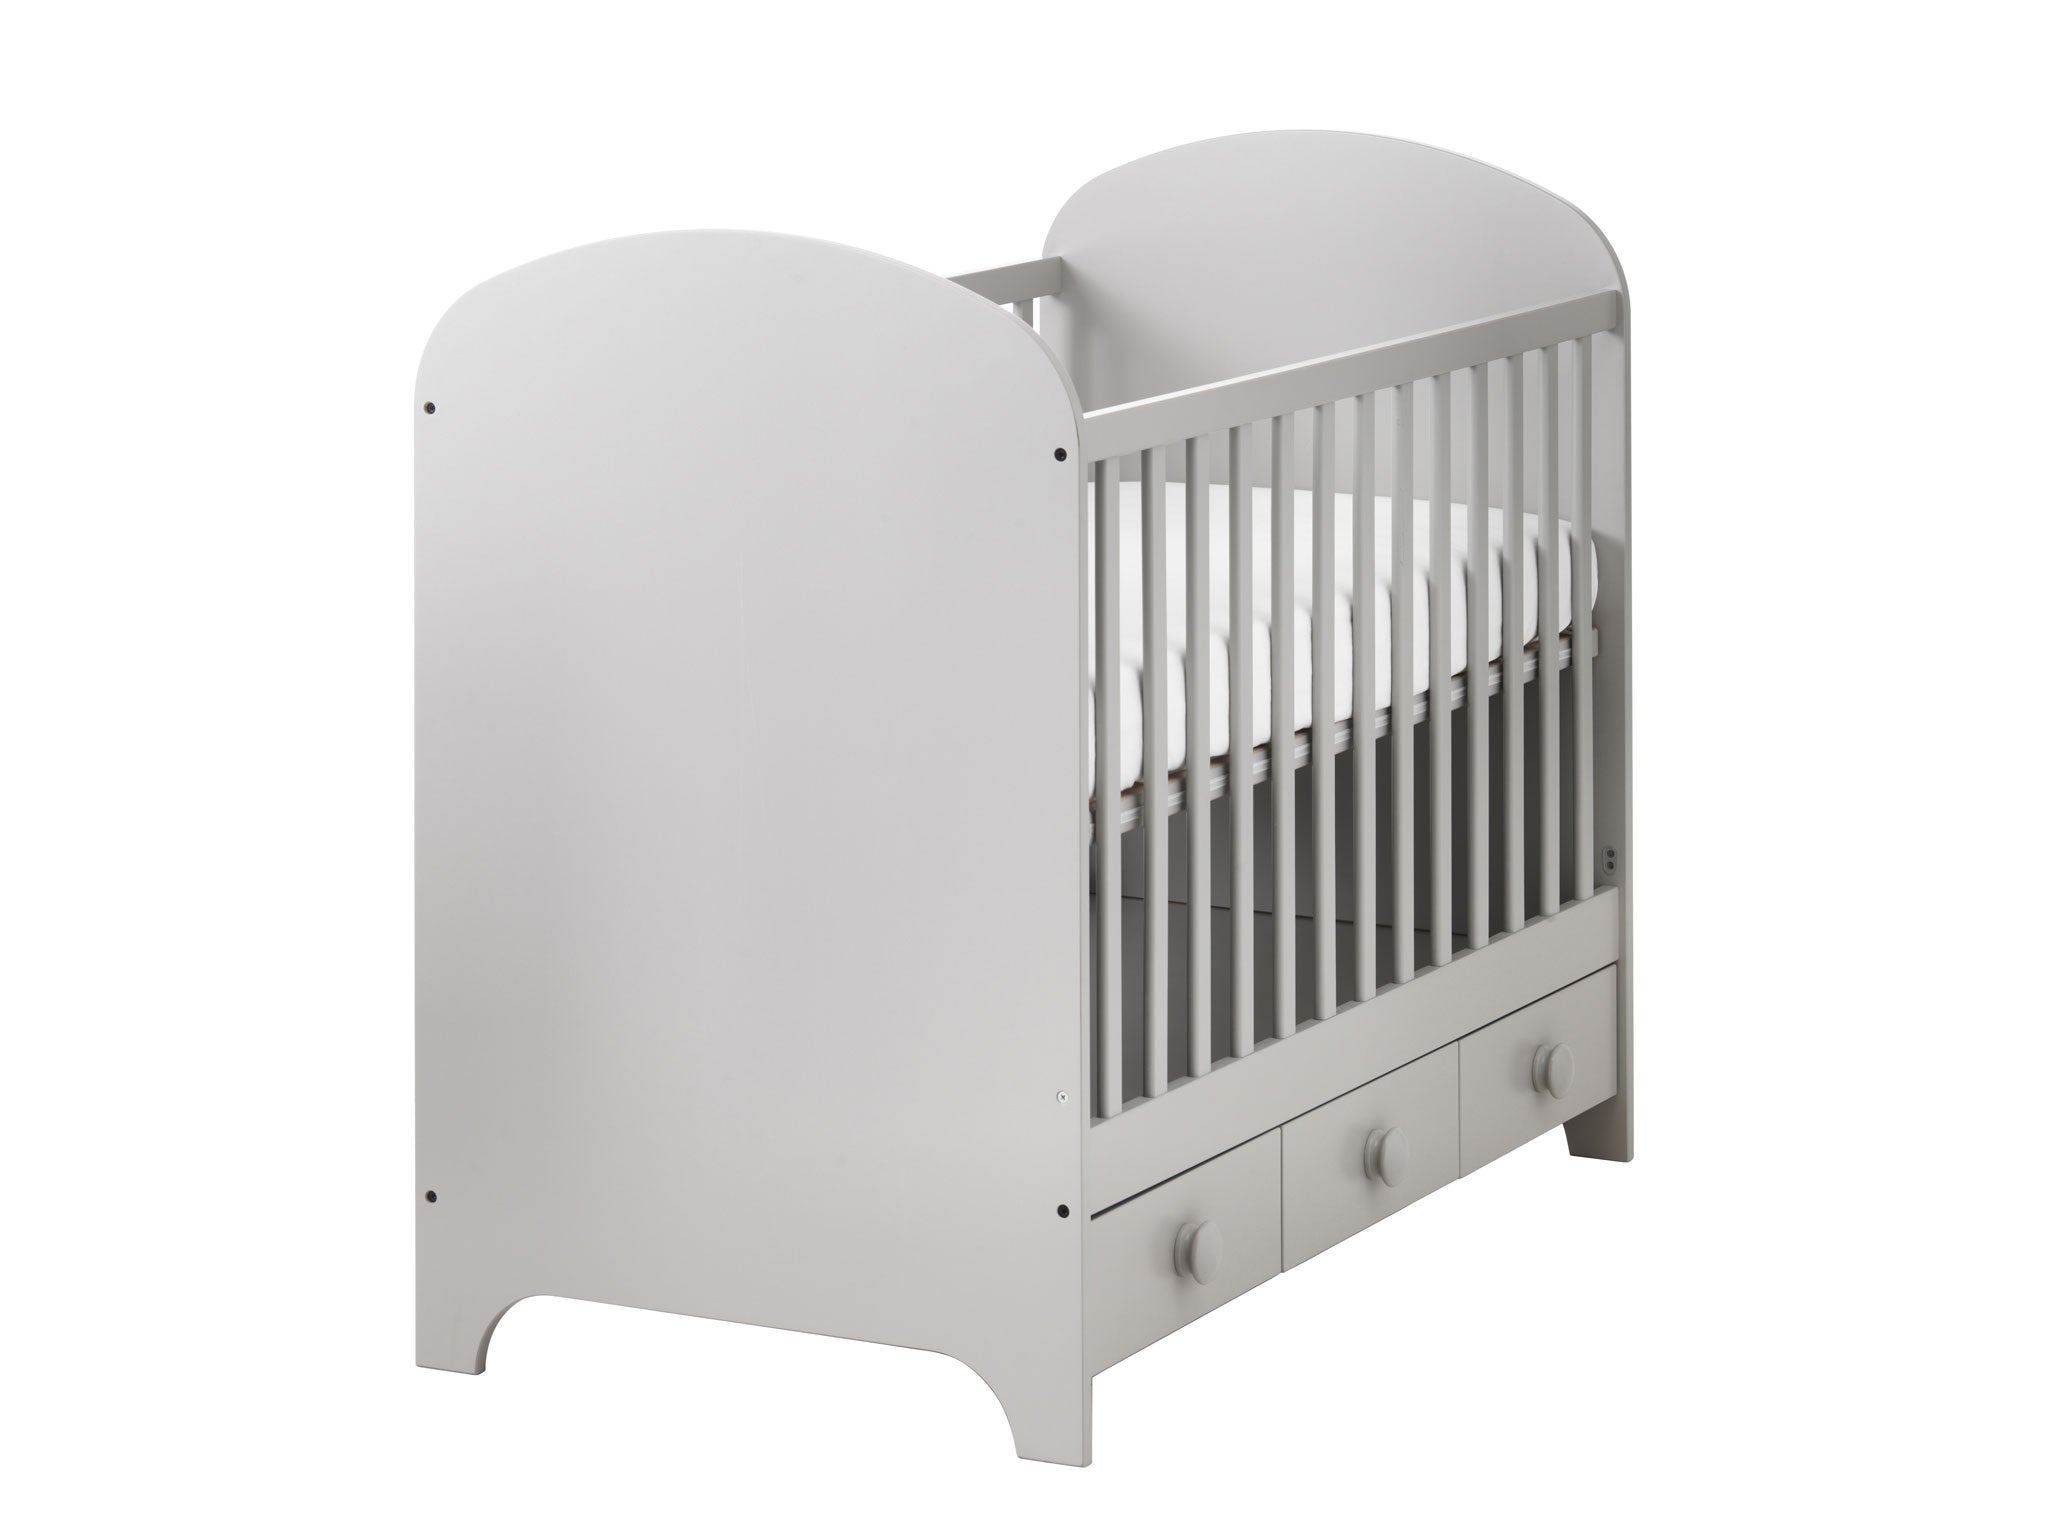 Baby Cots Uk 10 best baby beds the independent if youre brave enough to assemble your own ikea offers a range of affordable reliable cots among them is this traditional shaped cot with a sisterspd